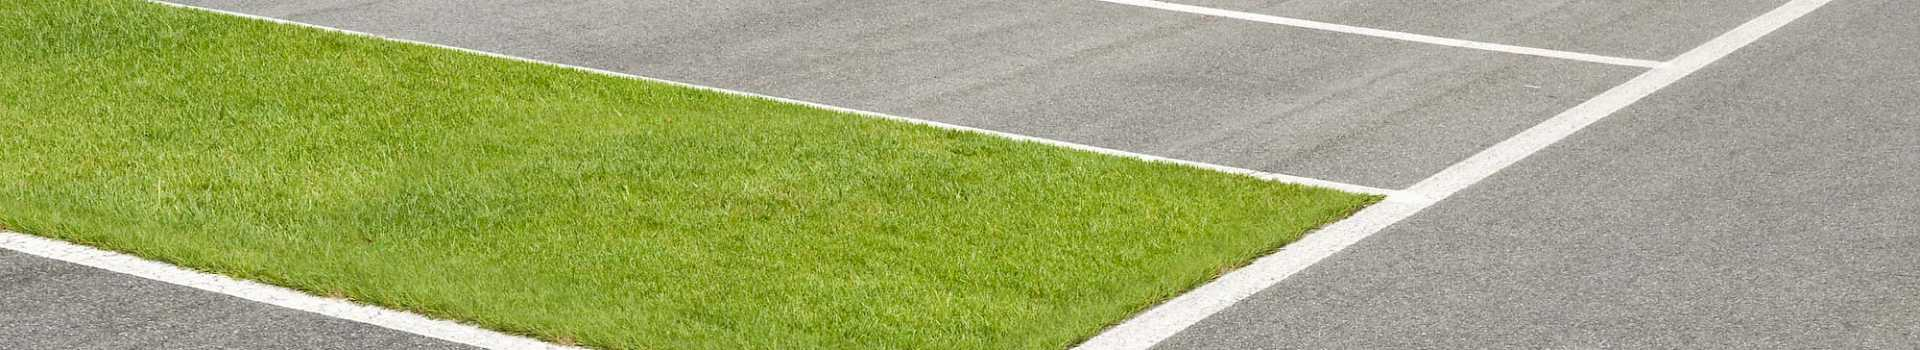 Gd Grass Installation Guide Green Driveway